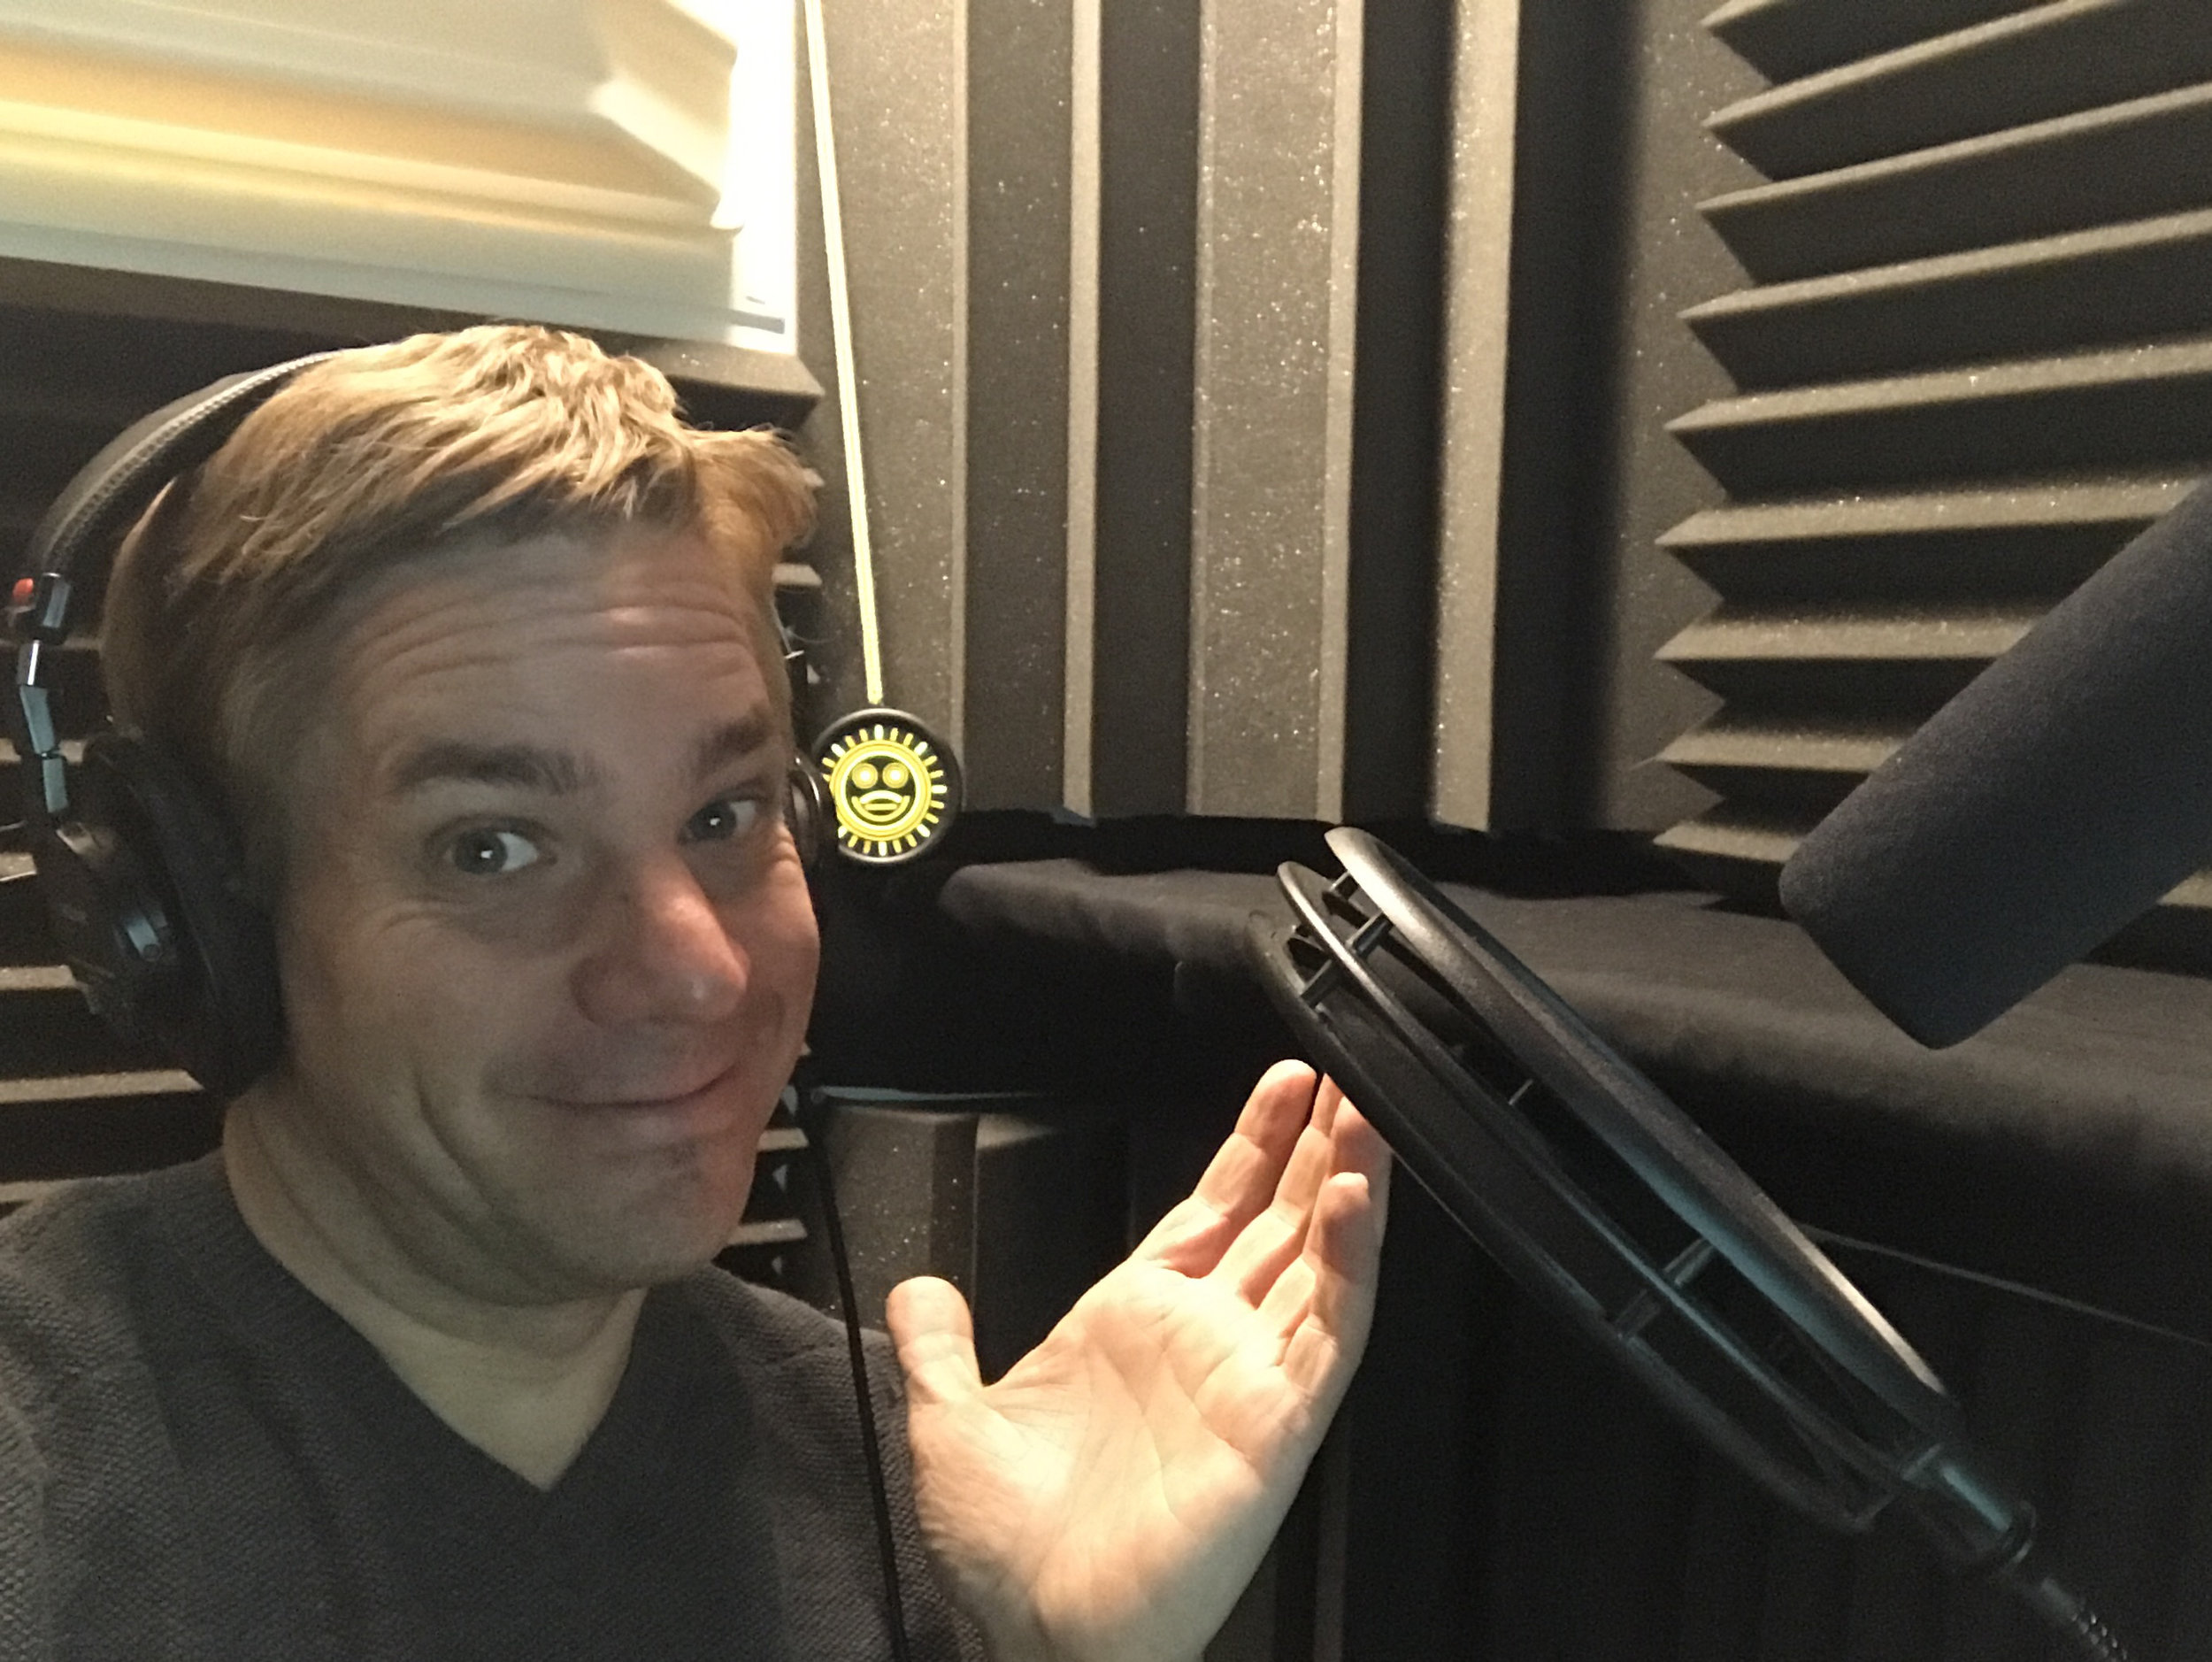 Jamie Buck, a seasoned male voice over artist, can return your voice over  within the hour,  when in studio.